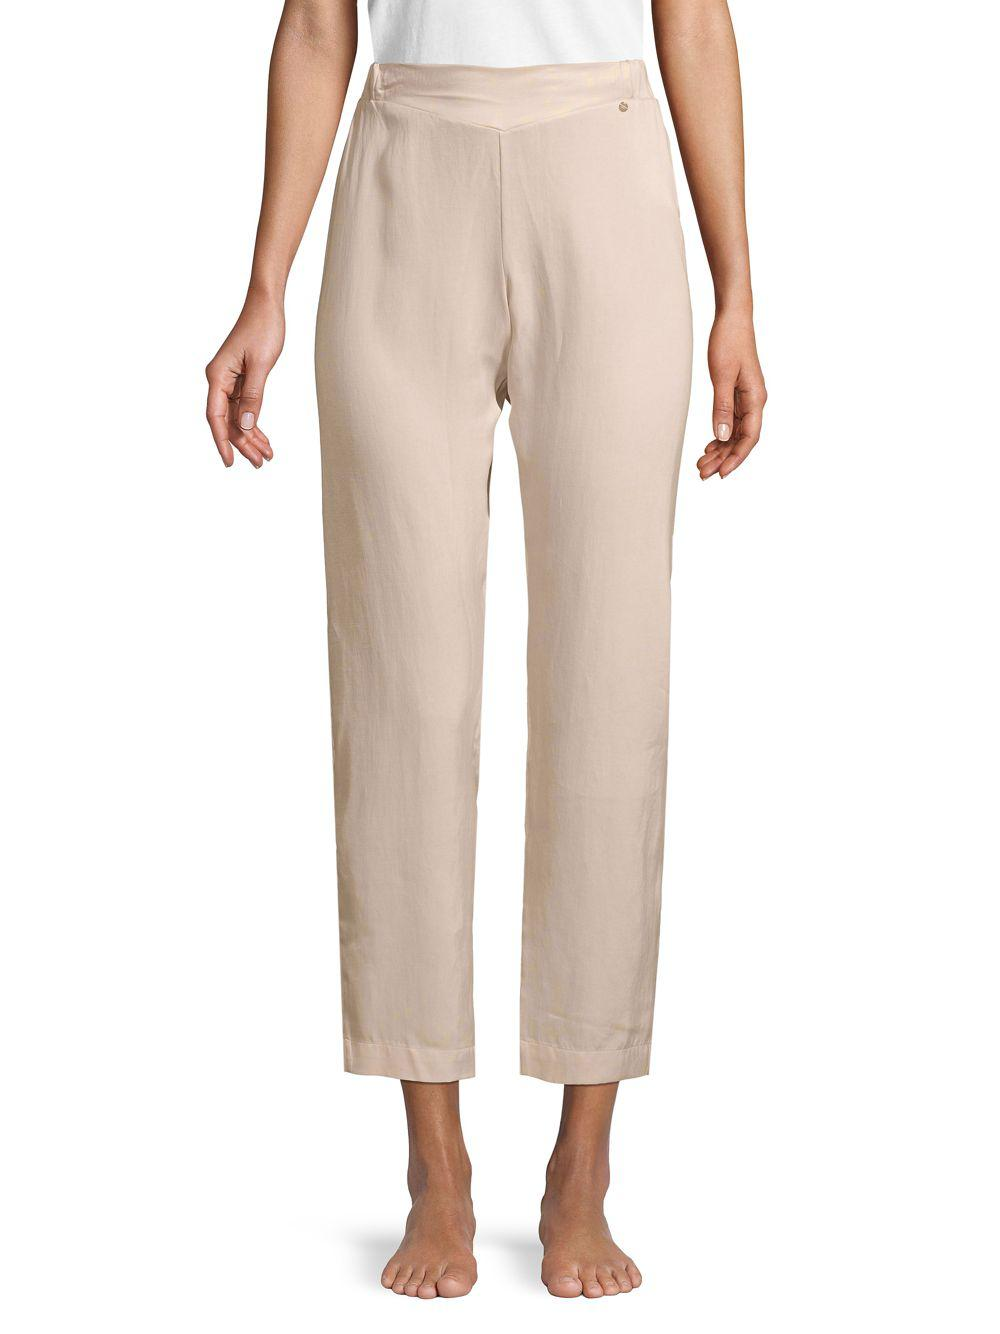 b2ff9687a419c Lyst - Hanro High-rise Lounge Pants in Gray